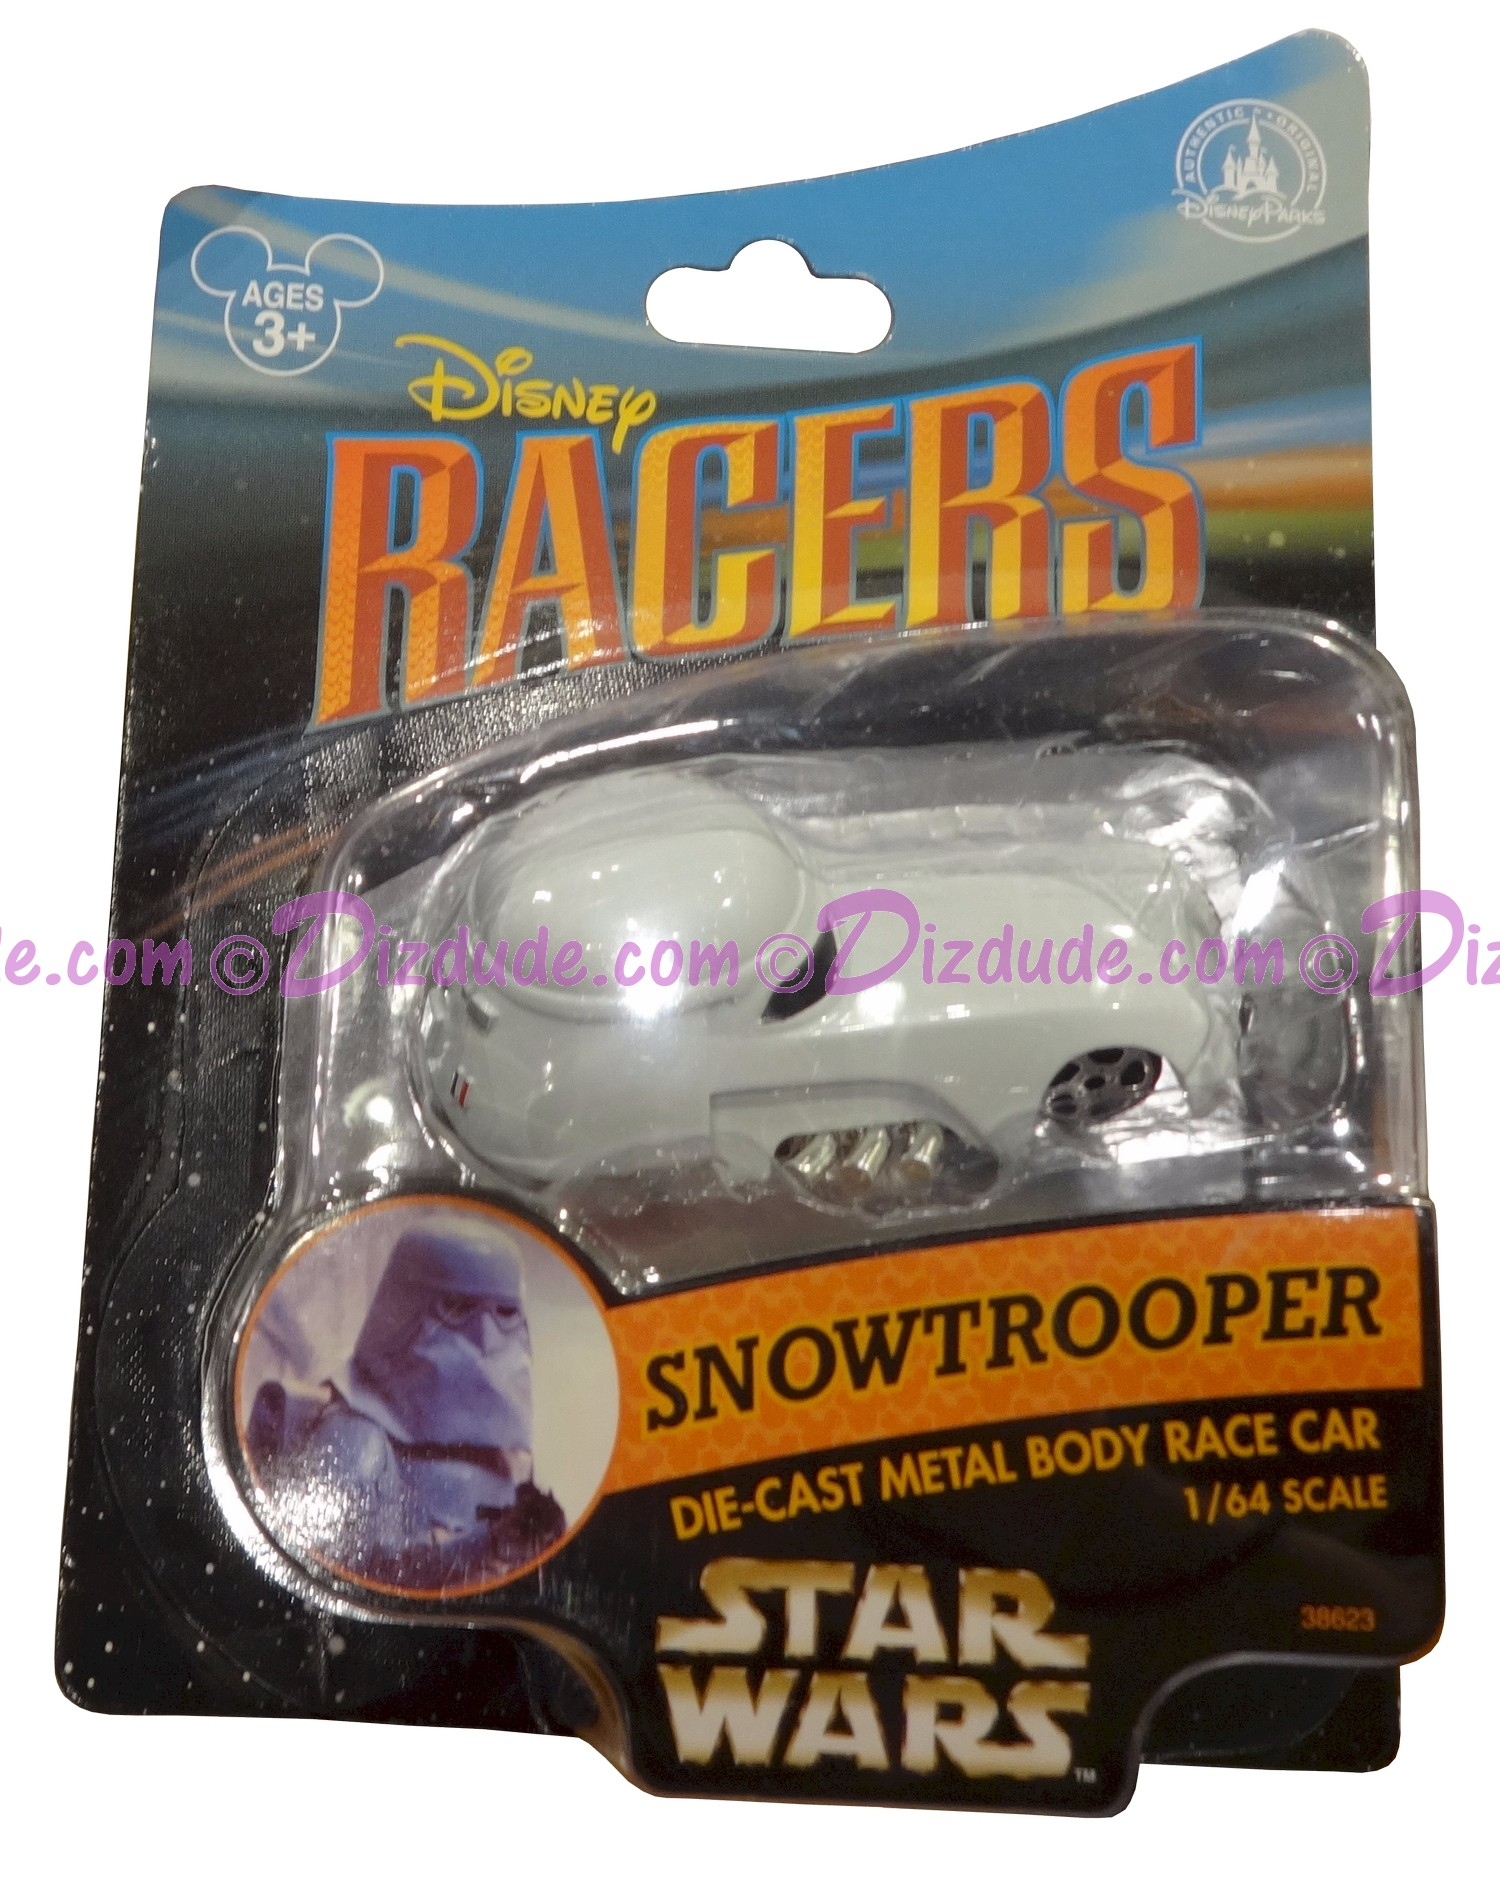 Star Tours Snowtrooper Disney Racer die cast metal body race car 1/64 scale © Dizdude.com